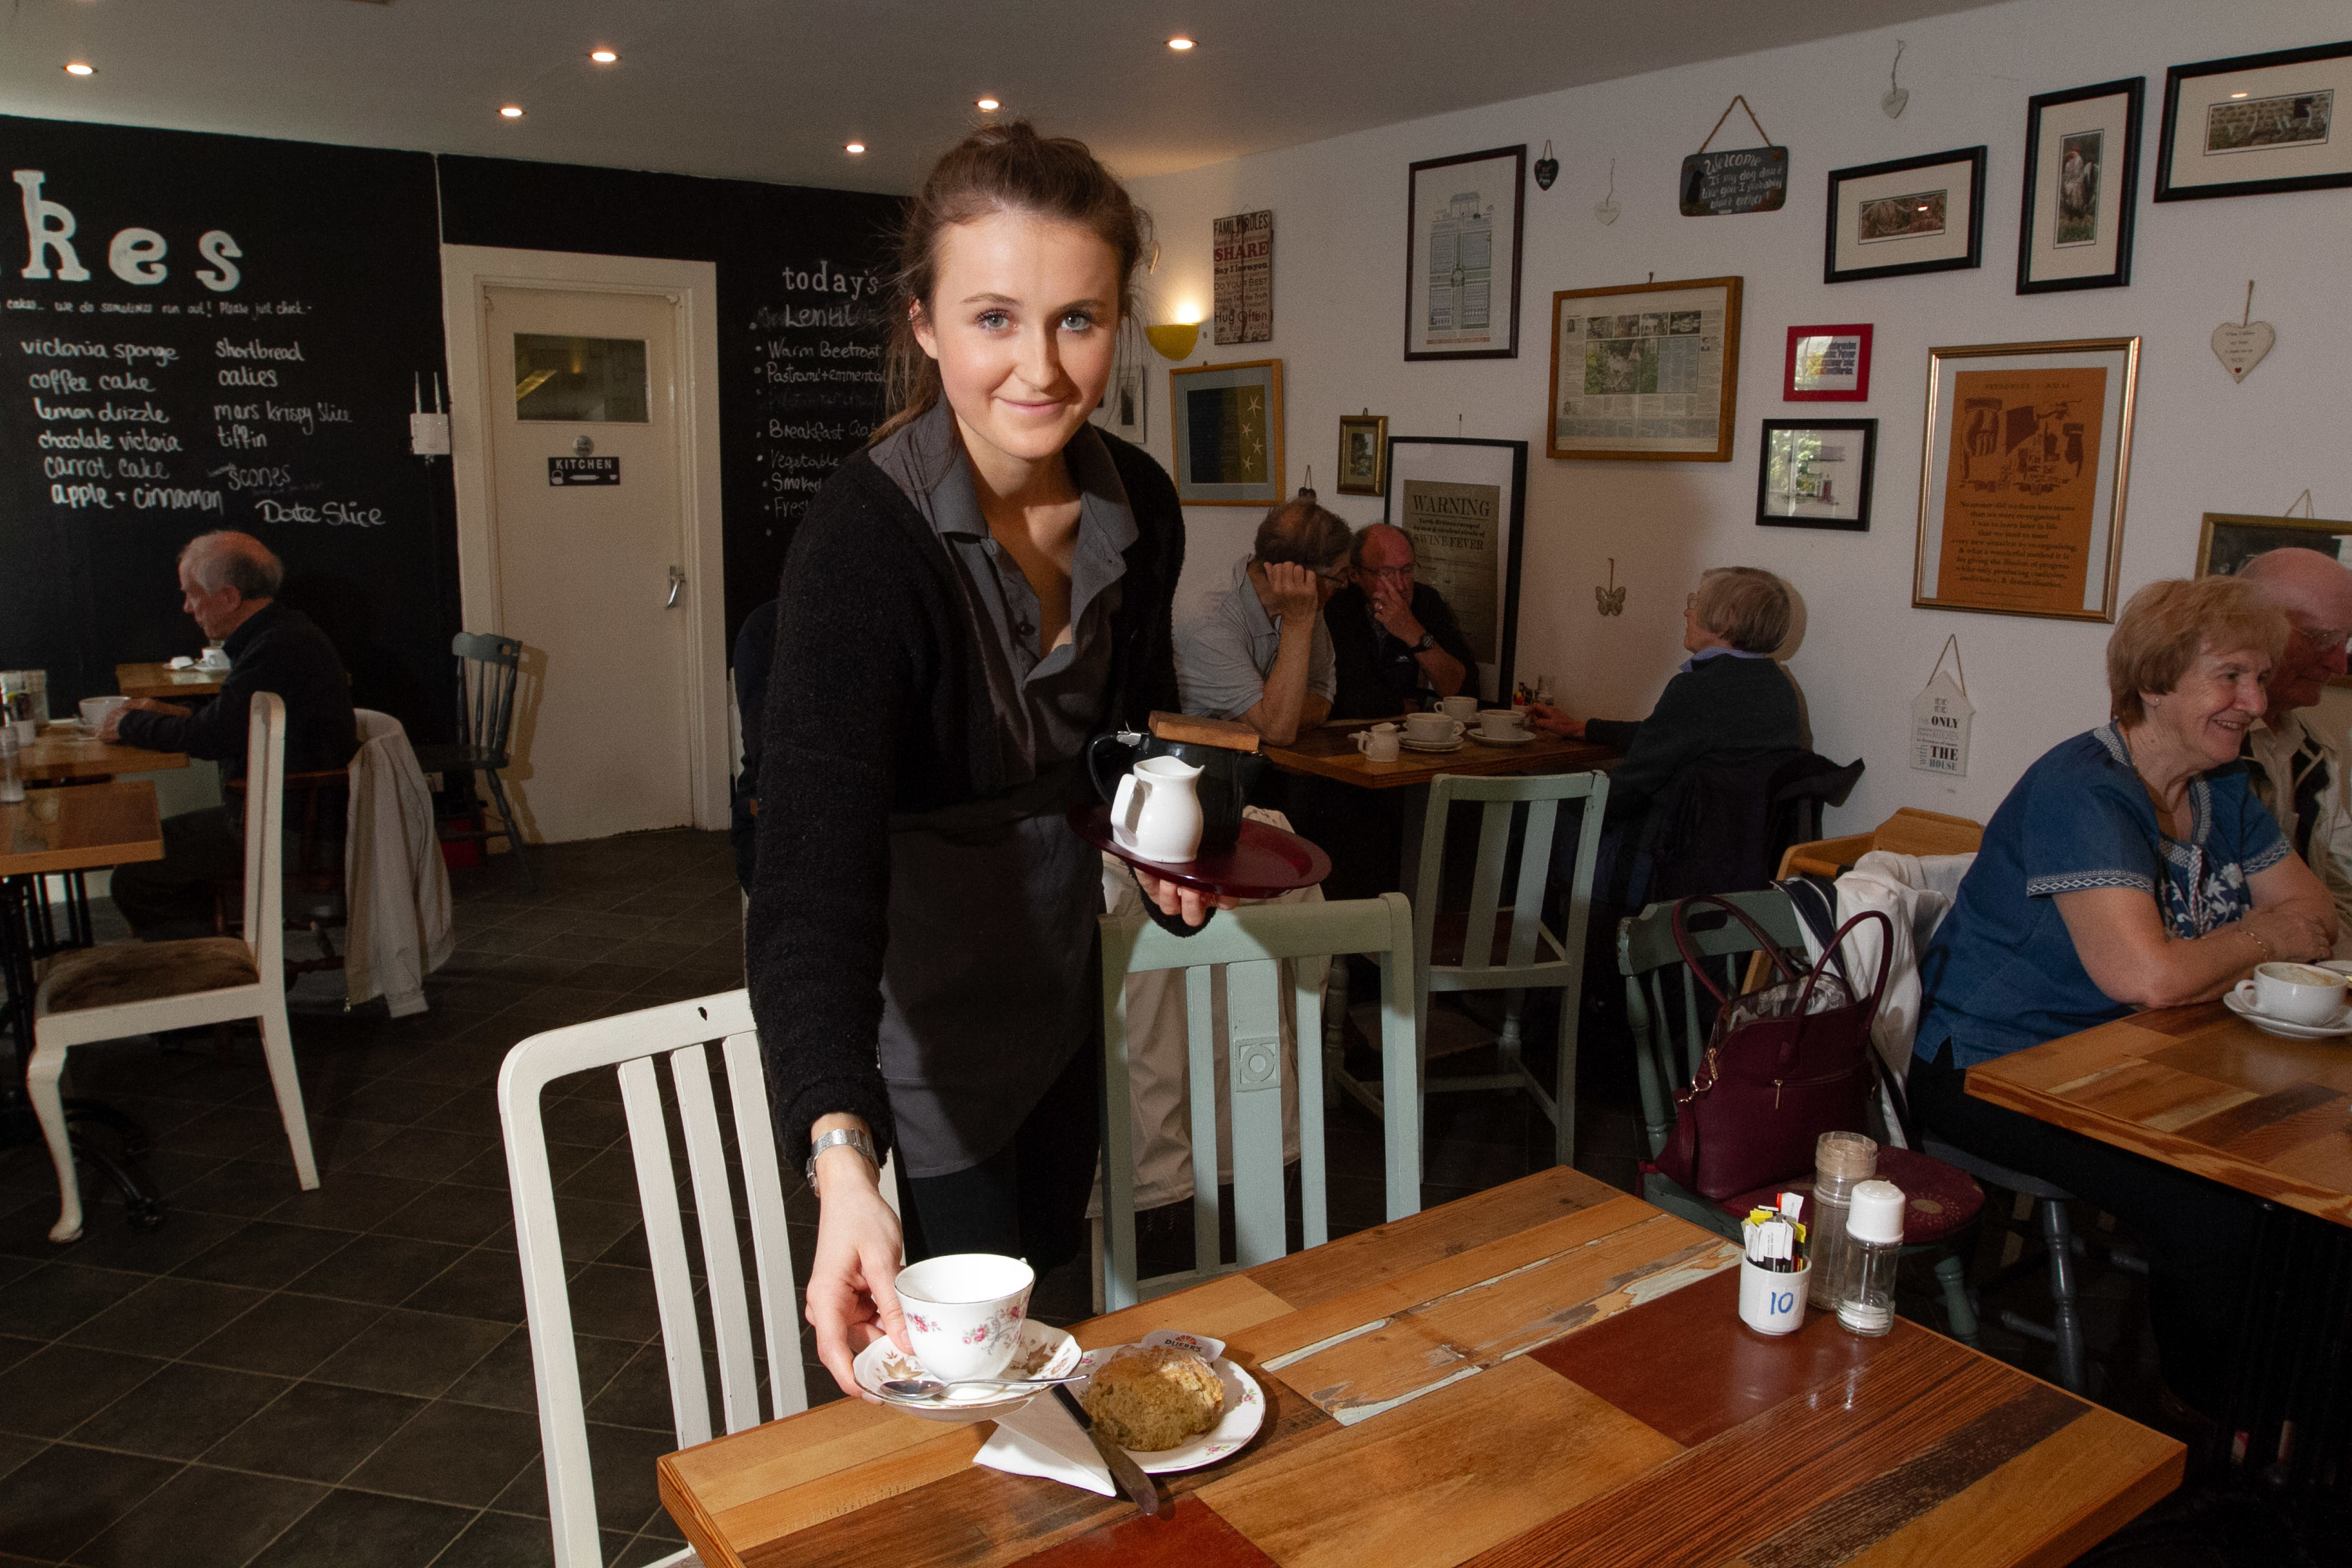 Spill The Beans Scone Spy in Dunkeld